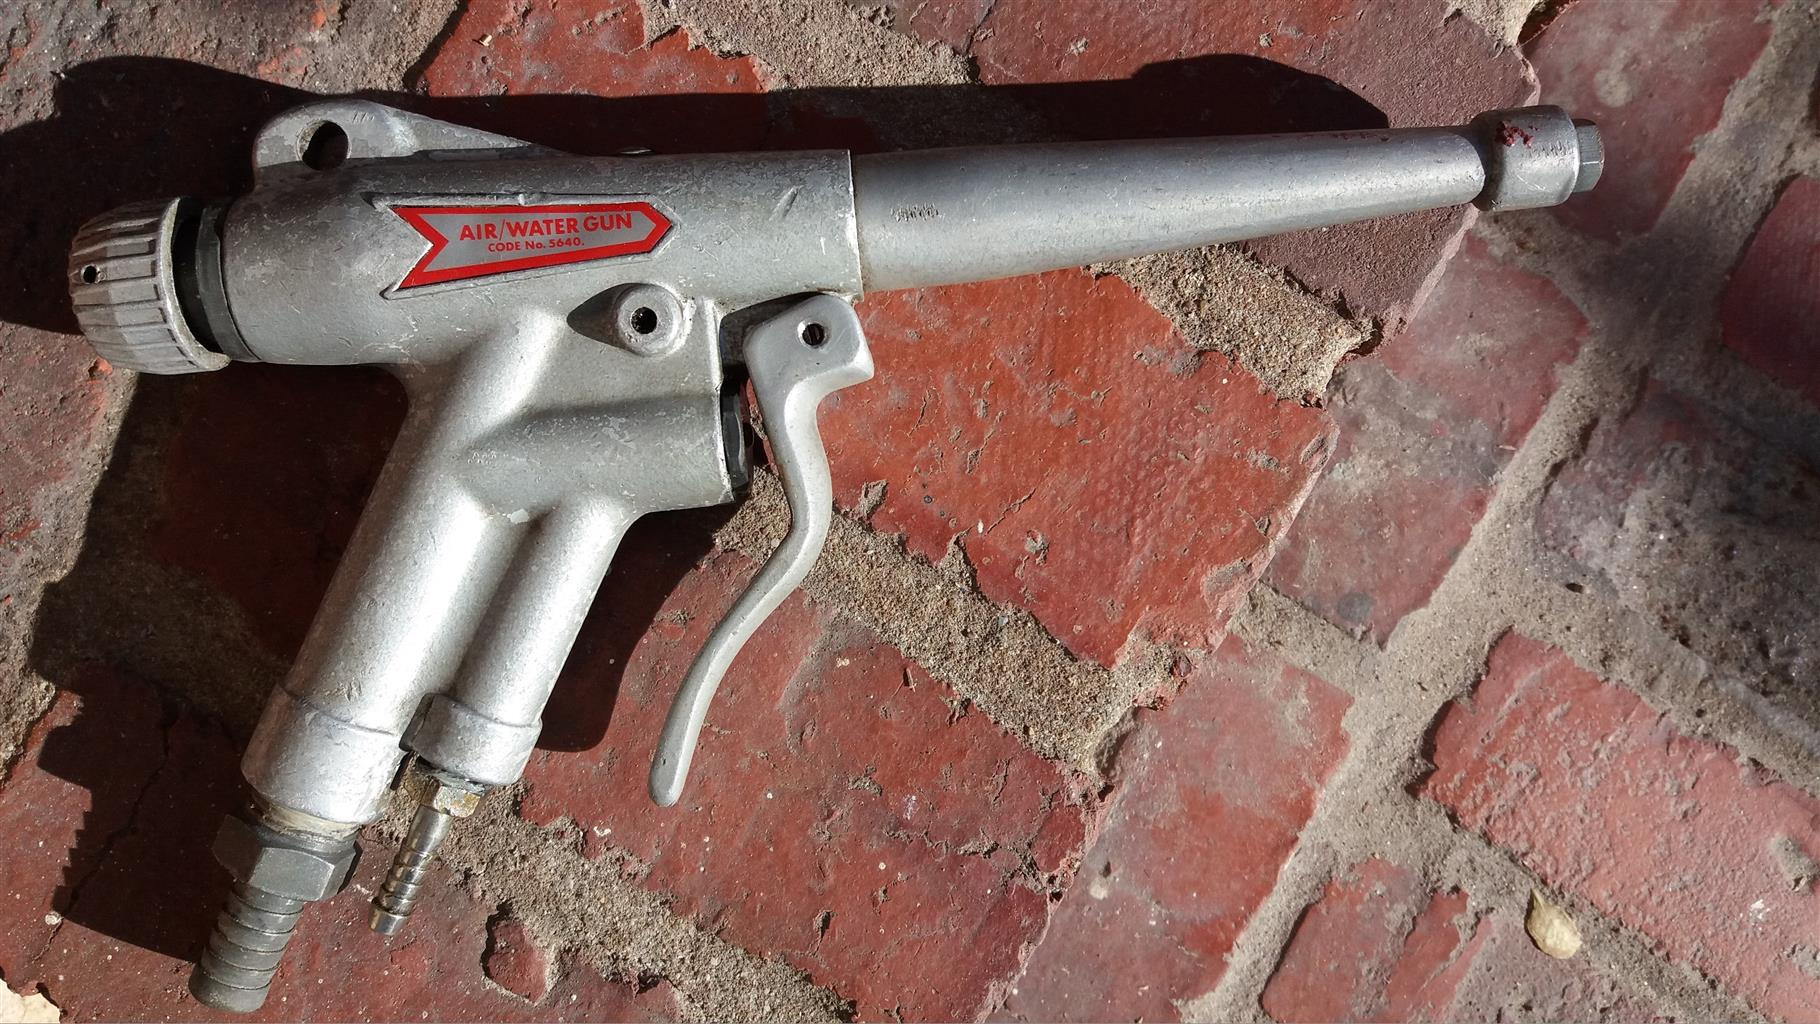 Air/water spray gun